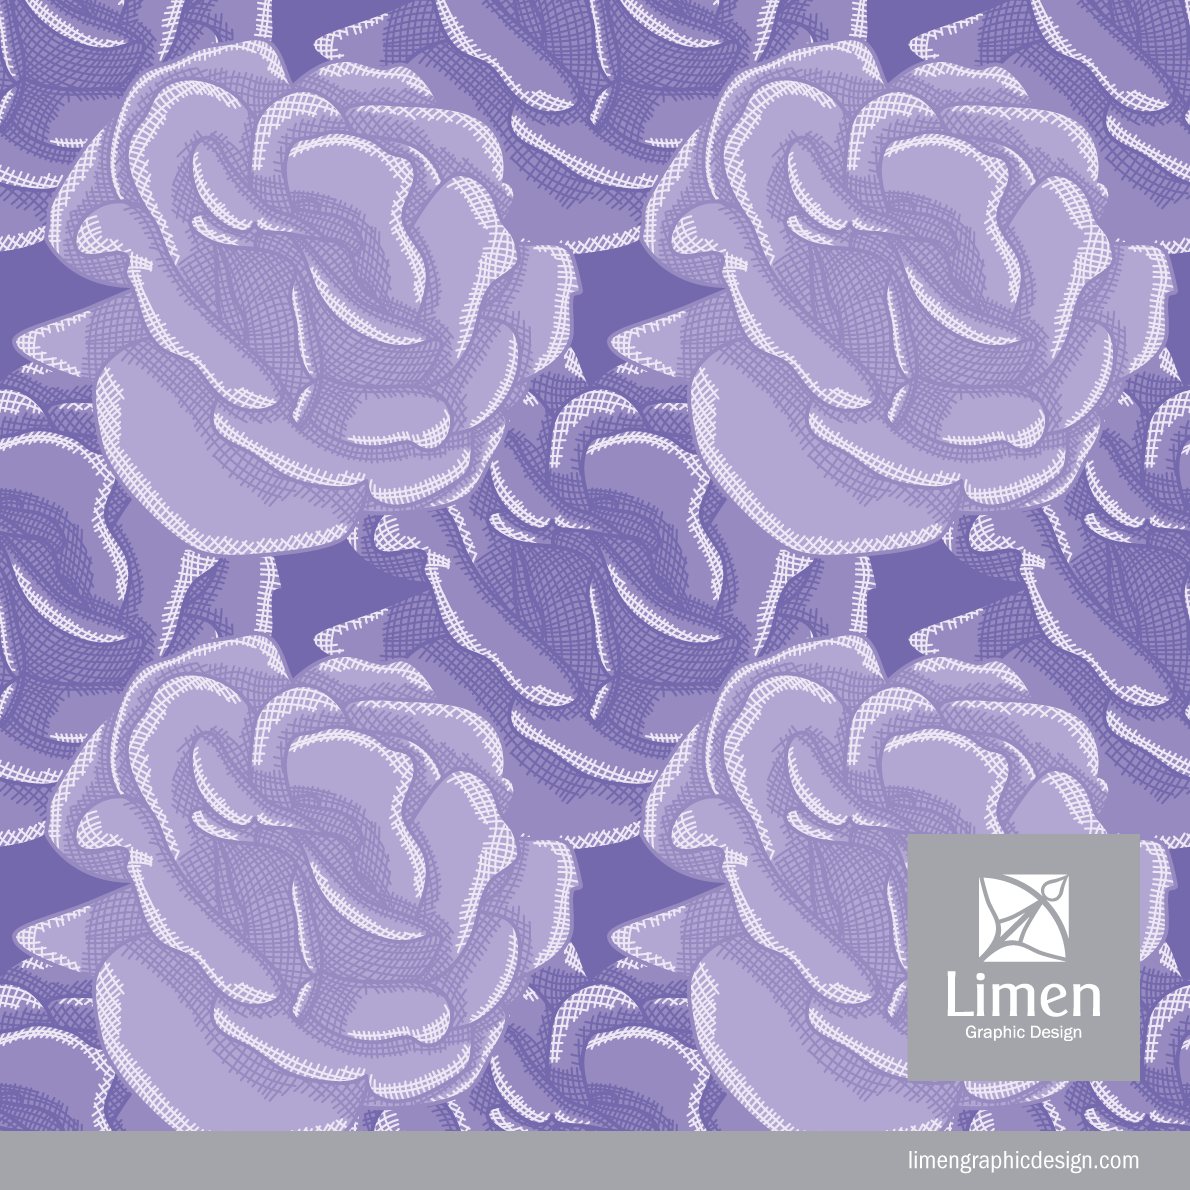 Abstract Rose Surface Pattern Design en 2020 (con imágenes